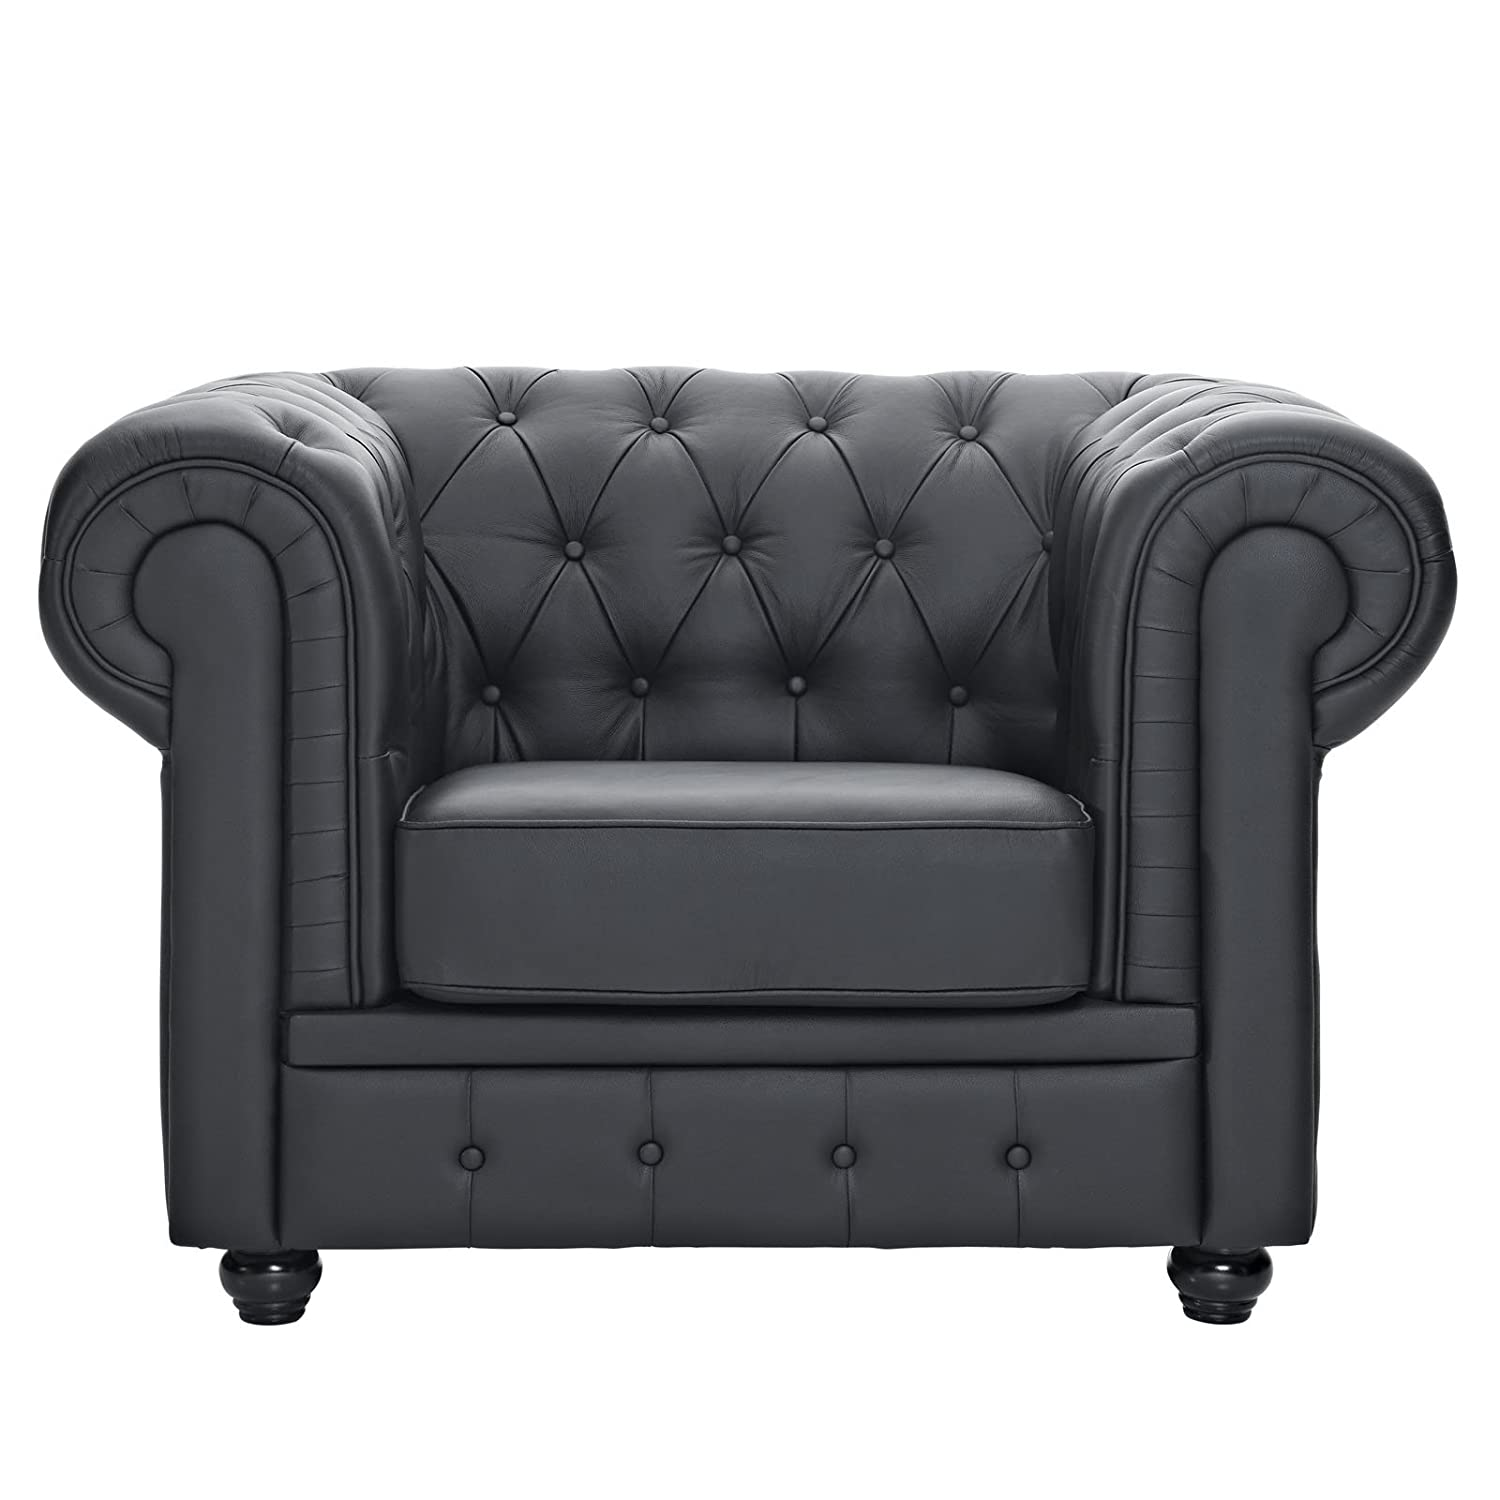 White chesterfield chair - Amazon Com Modway Chesterfield Armchair In Black Leather And Leather Match Kitchen Dining